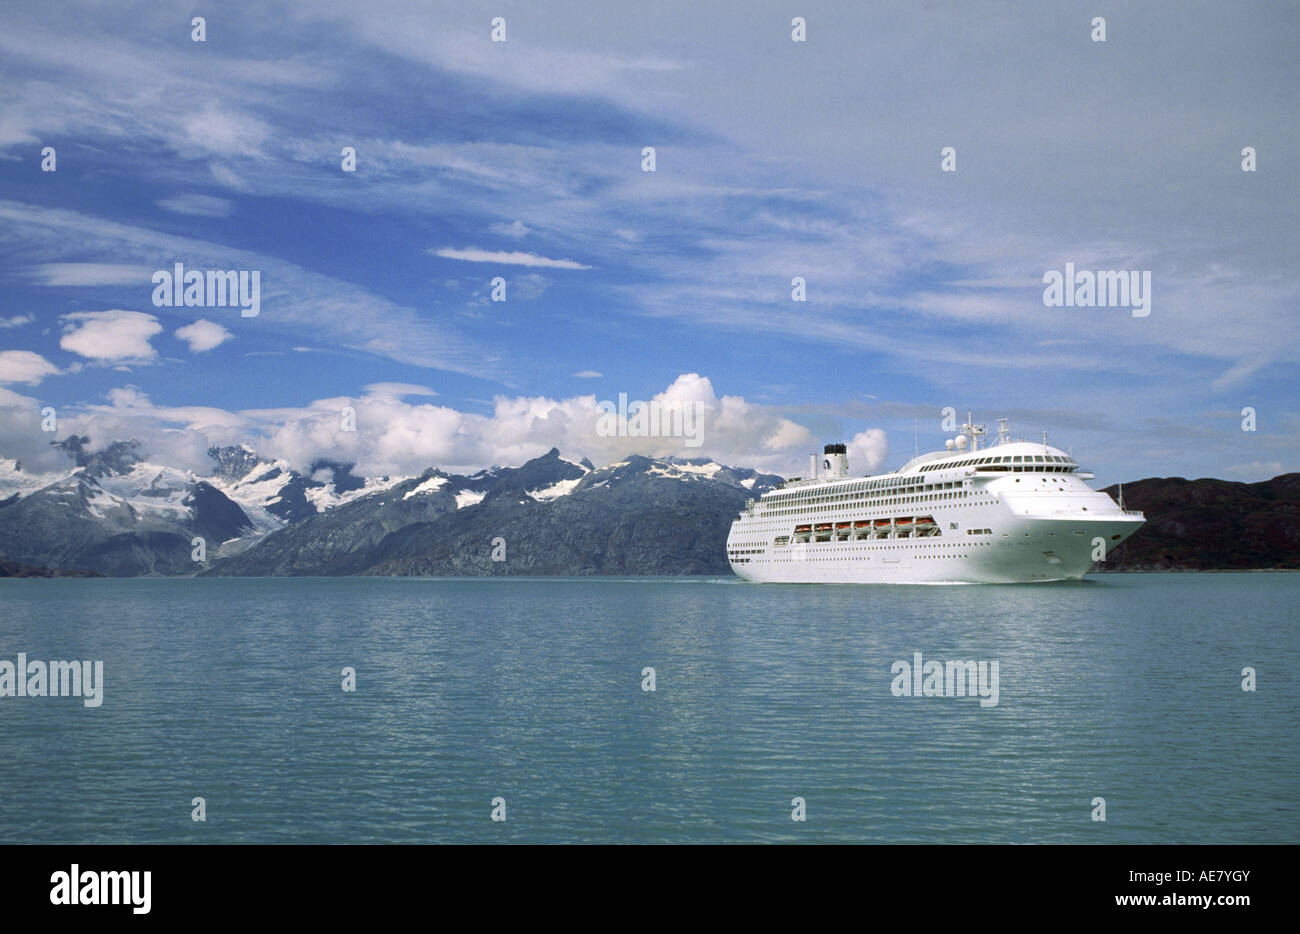 A P&O CRUISE SHIP plies the waters of  Glacier Bay Nationalpark, USA, Alaska, Glacier Bay National Park - Stock Image